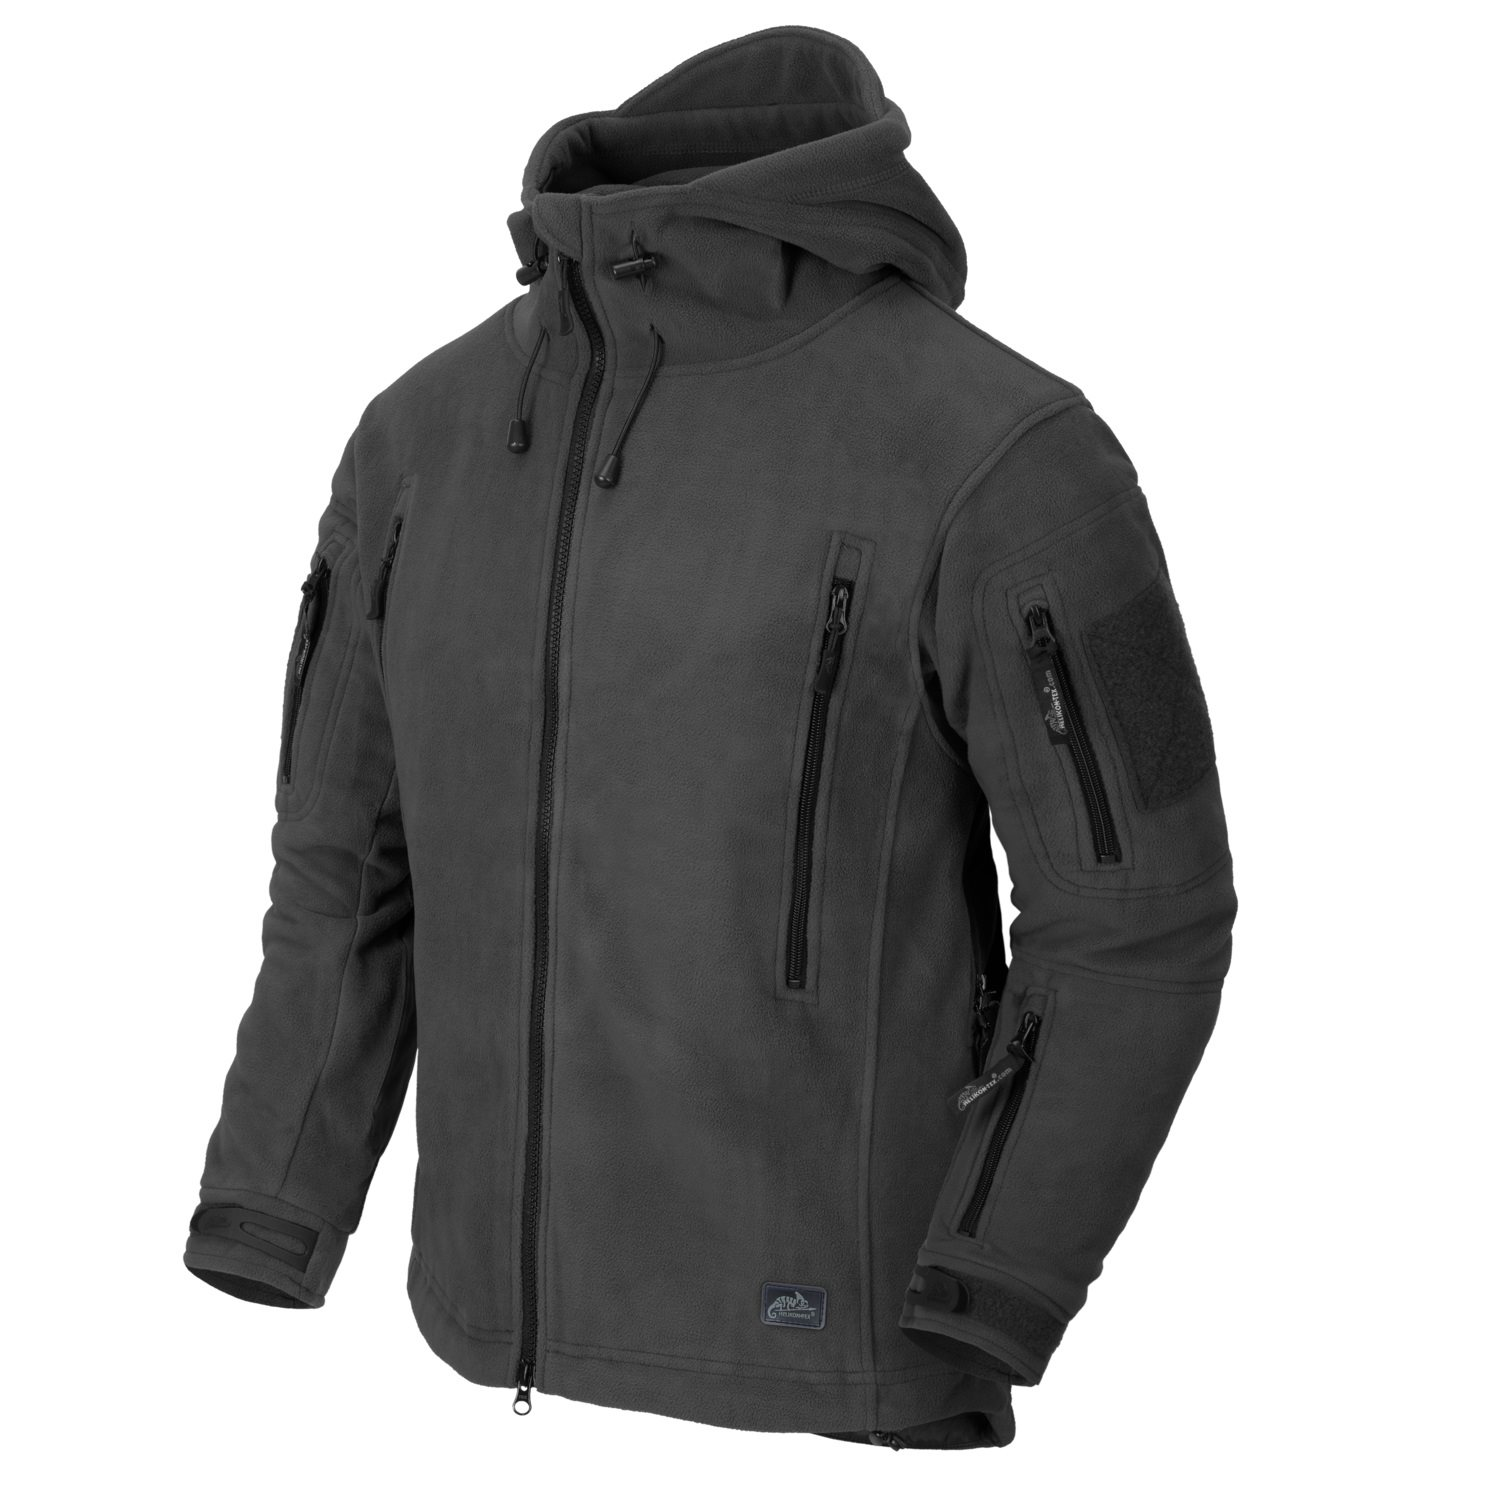 Bunda PATRIOT Heavy fleece SHADOW GREY Helikon-Tex® BL-PAT-HF-35 L-11